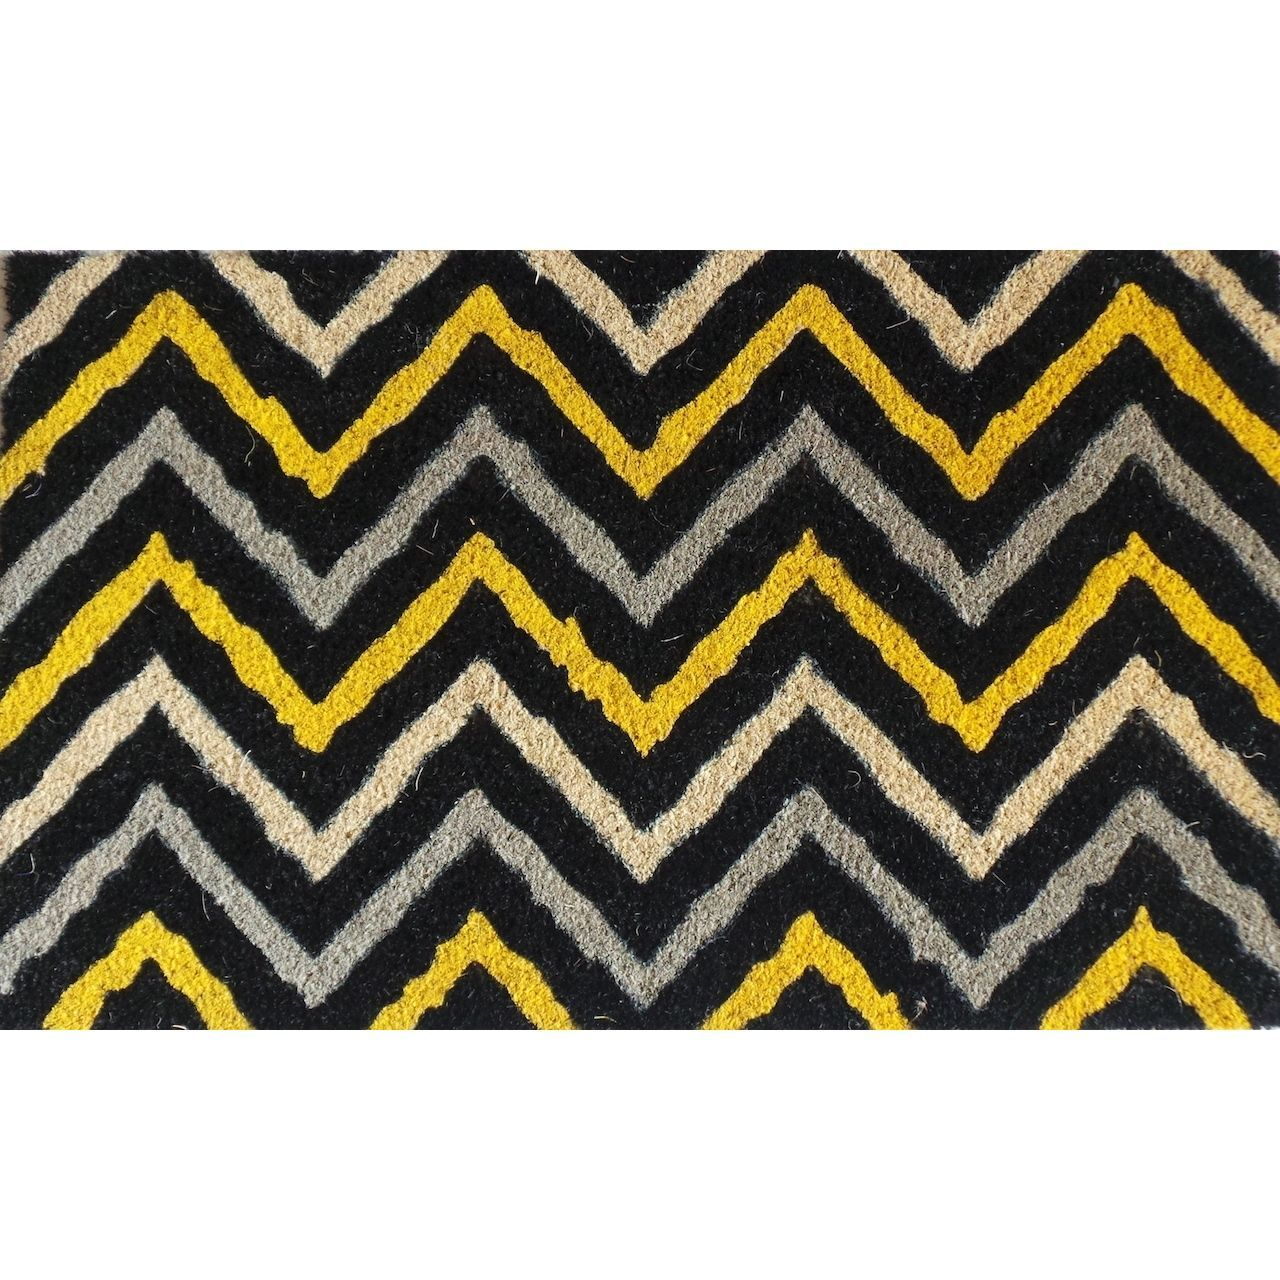 Keep your floors clean and your home stylish with this decorative ...